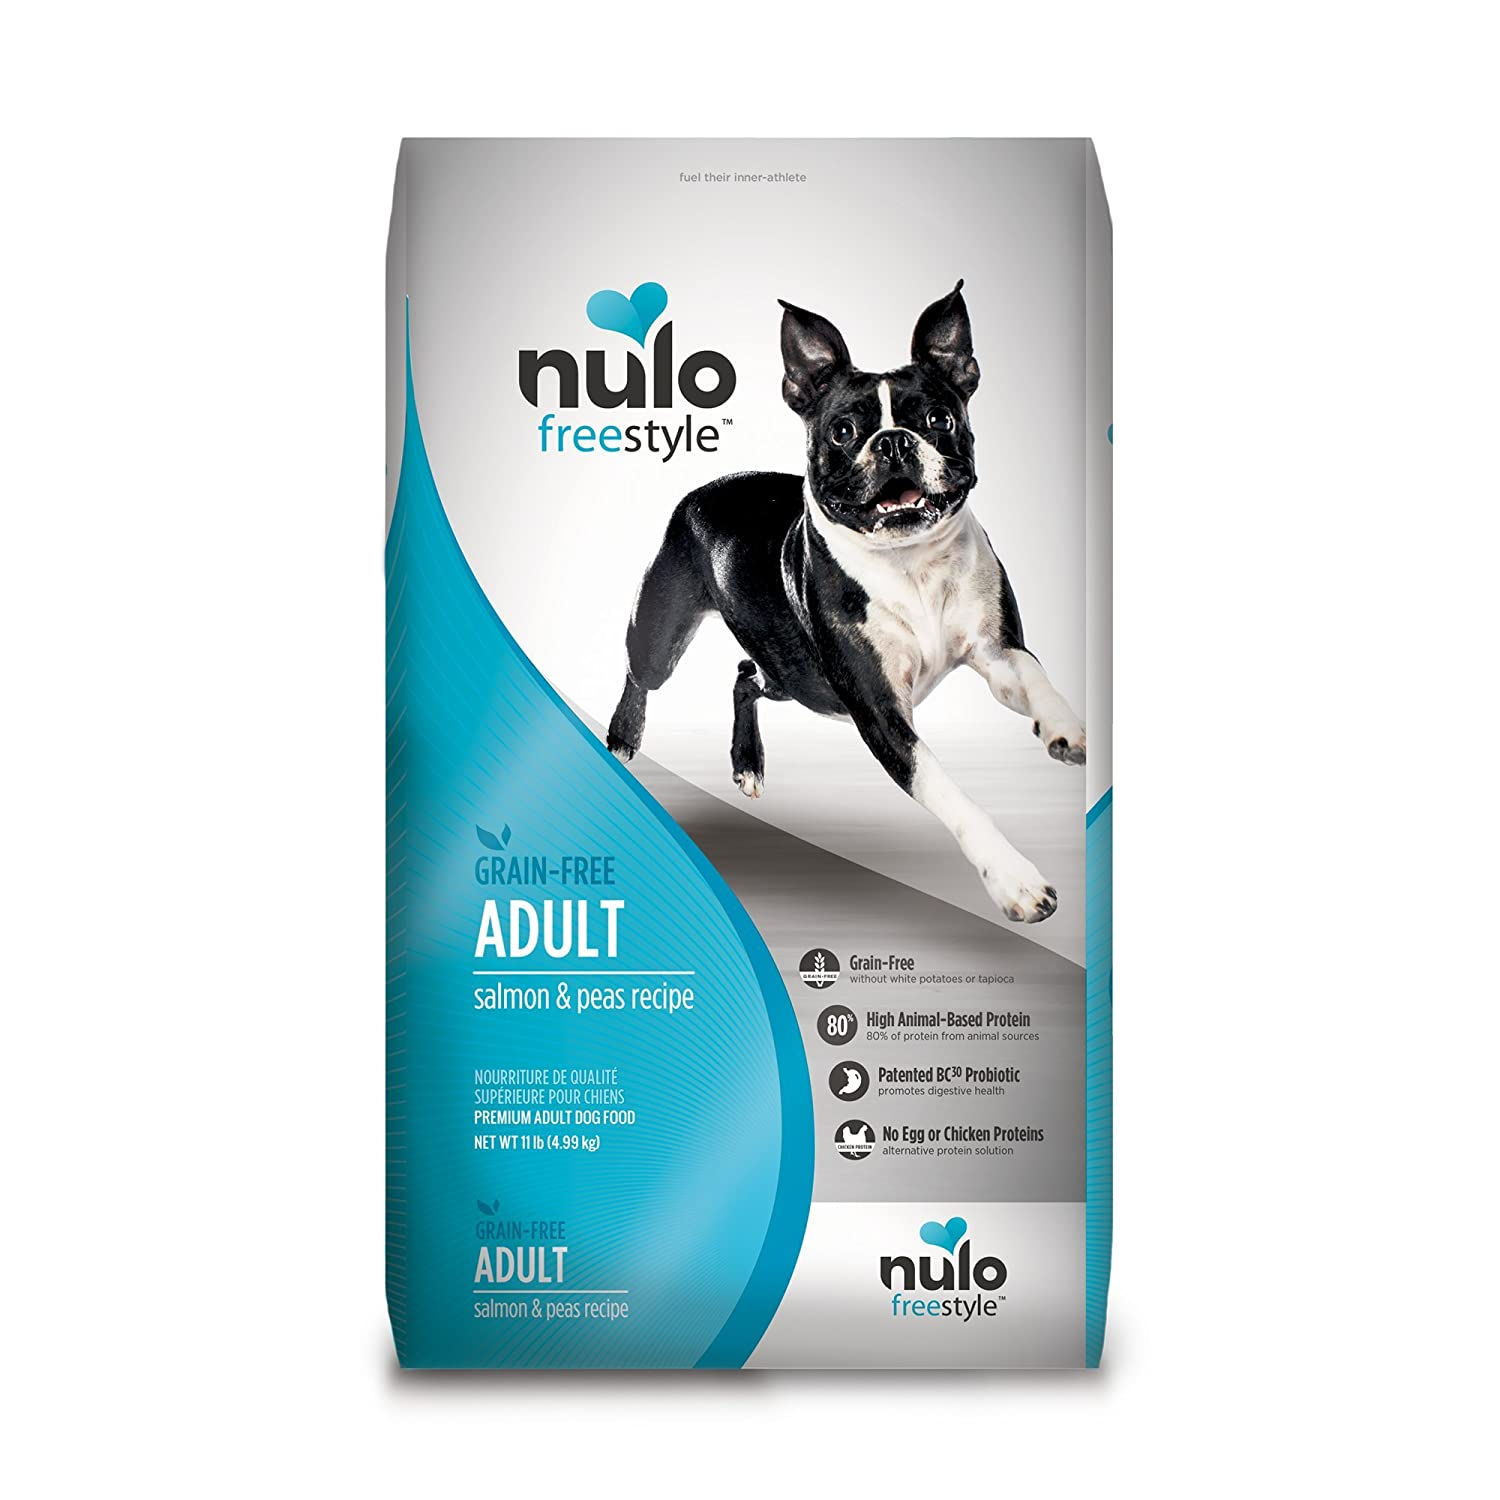 Amazon.com: Nulo Grain Free Dog Food: All Natural Adult Dry Pet Food ...